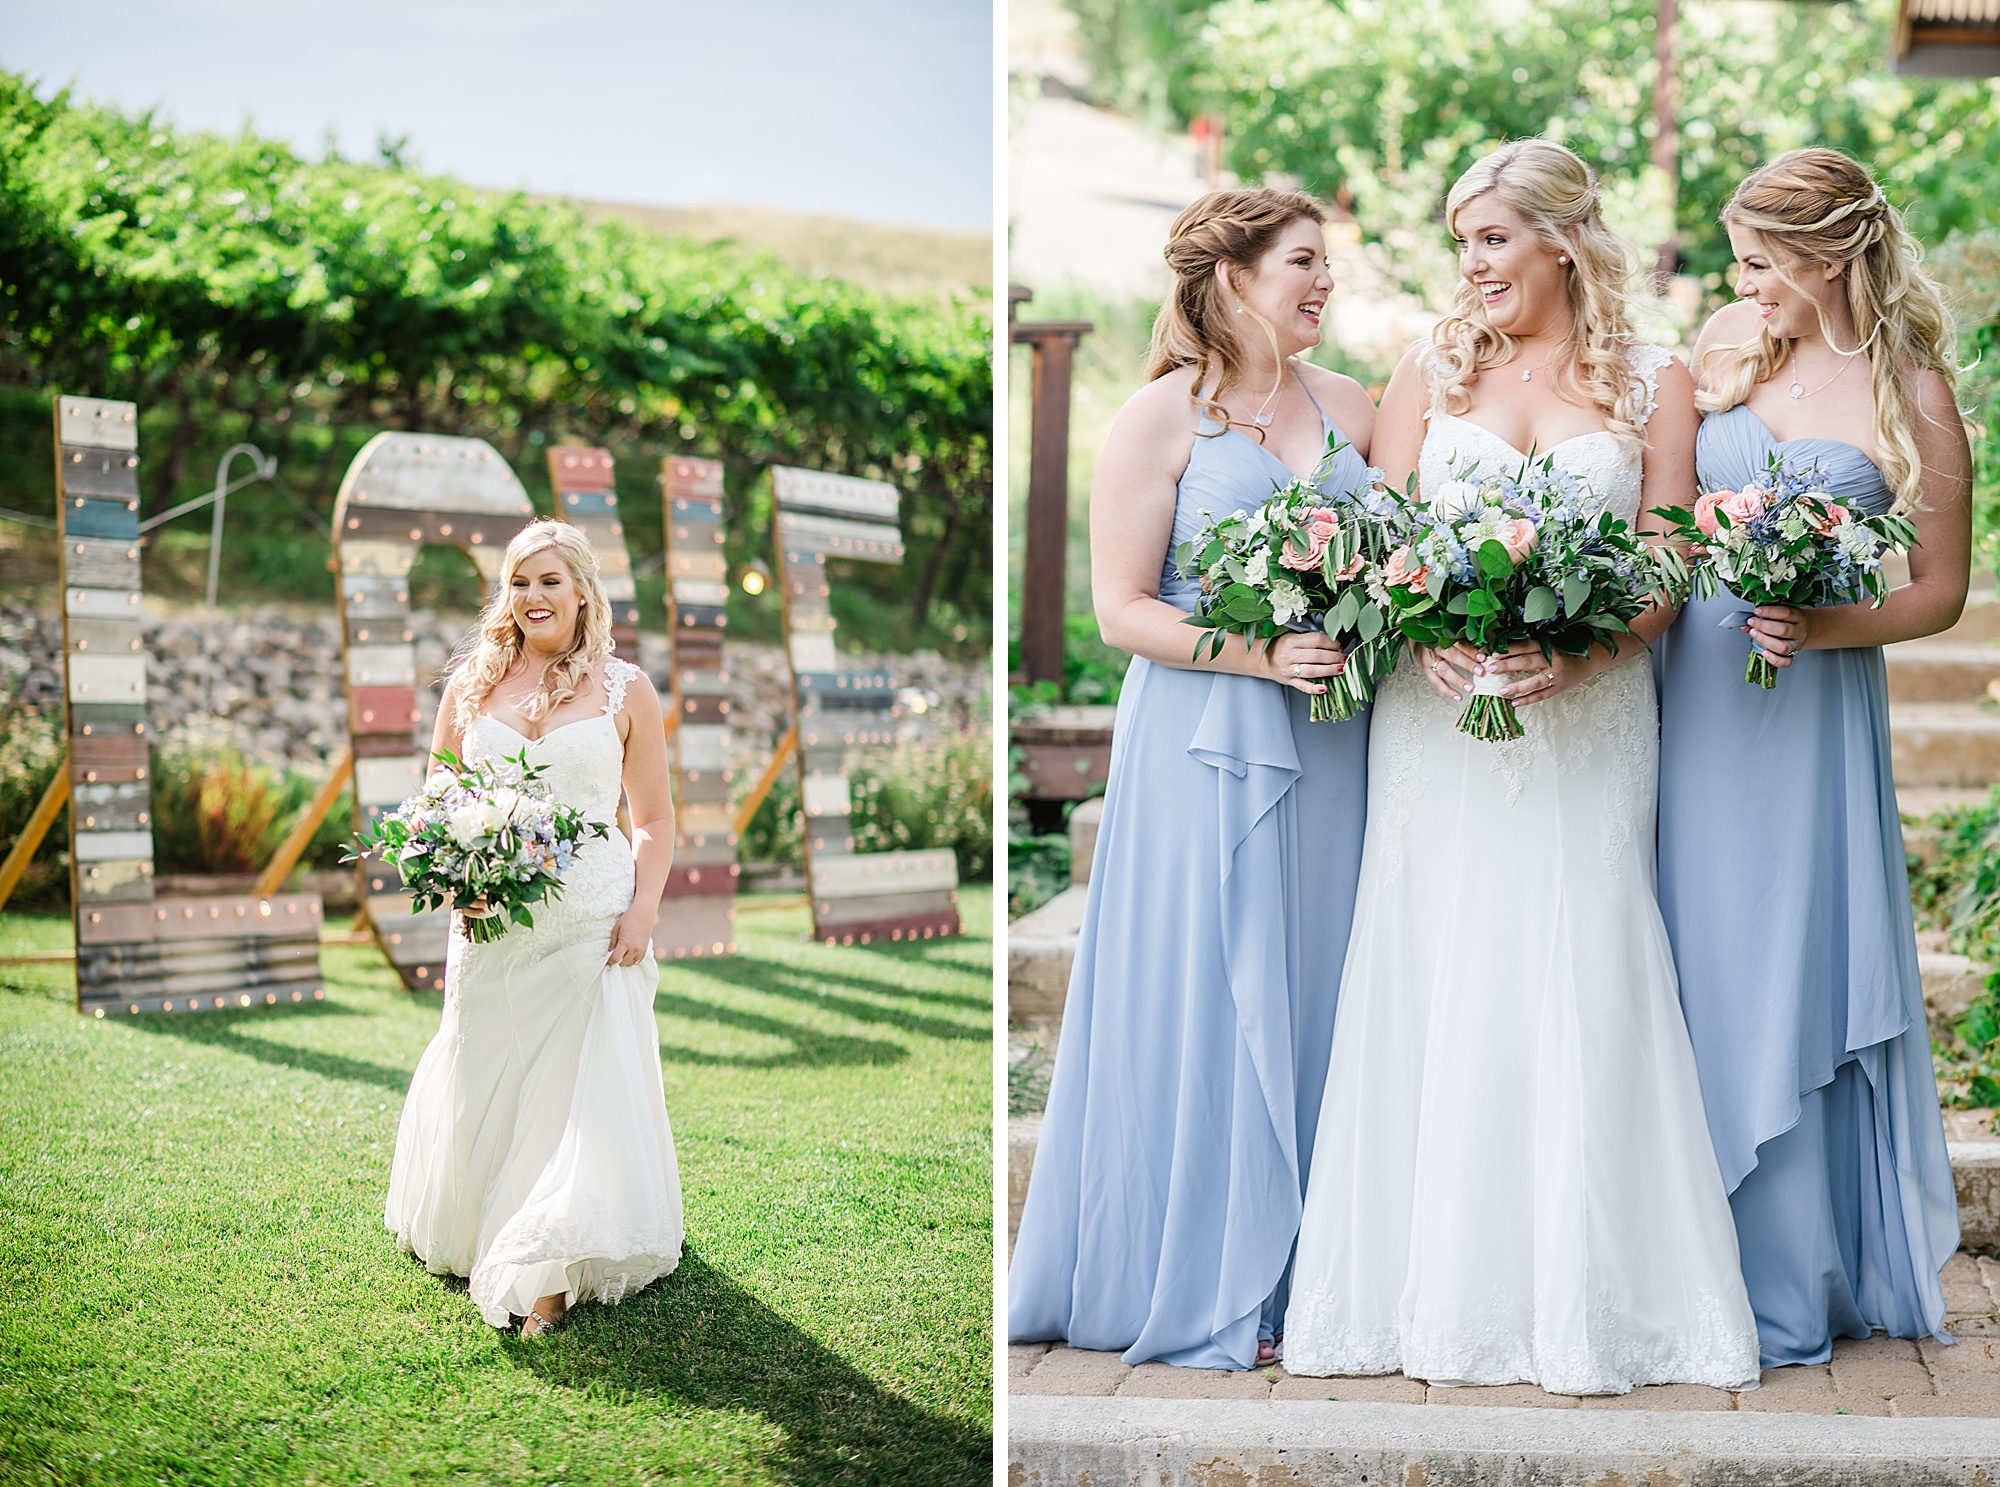 Rustic Taber Ranch Wedding - Sarah Maren Photography